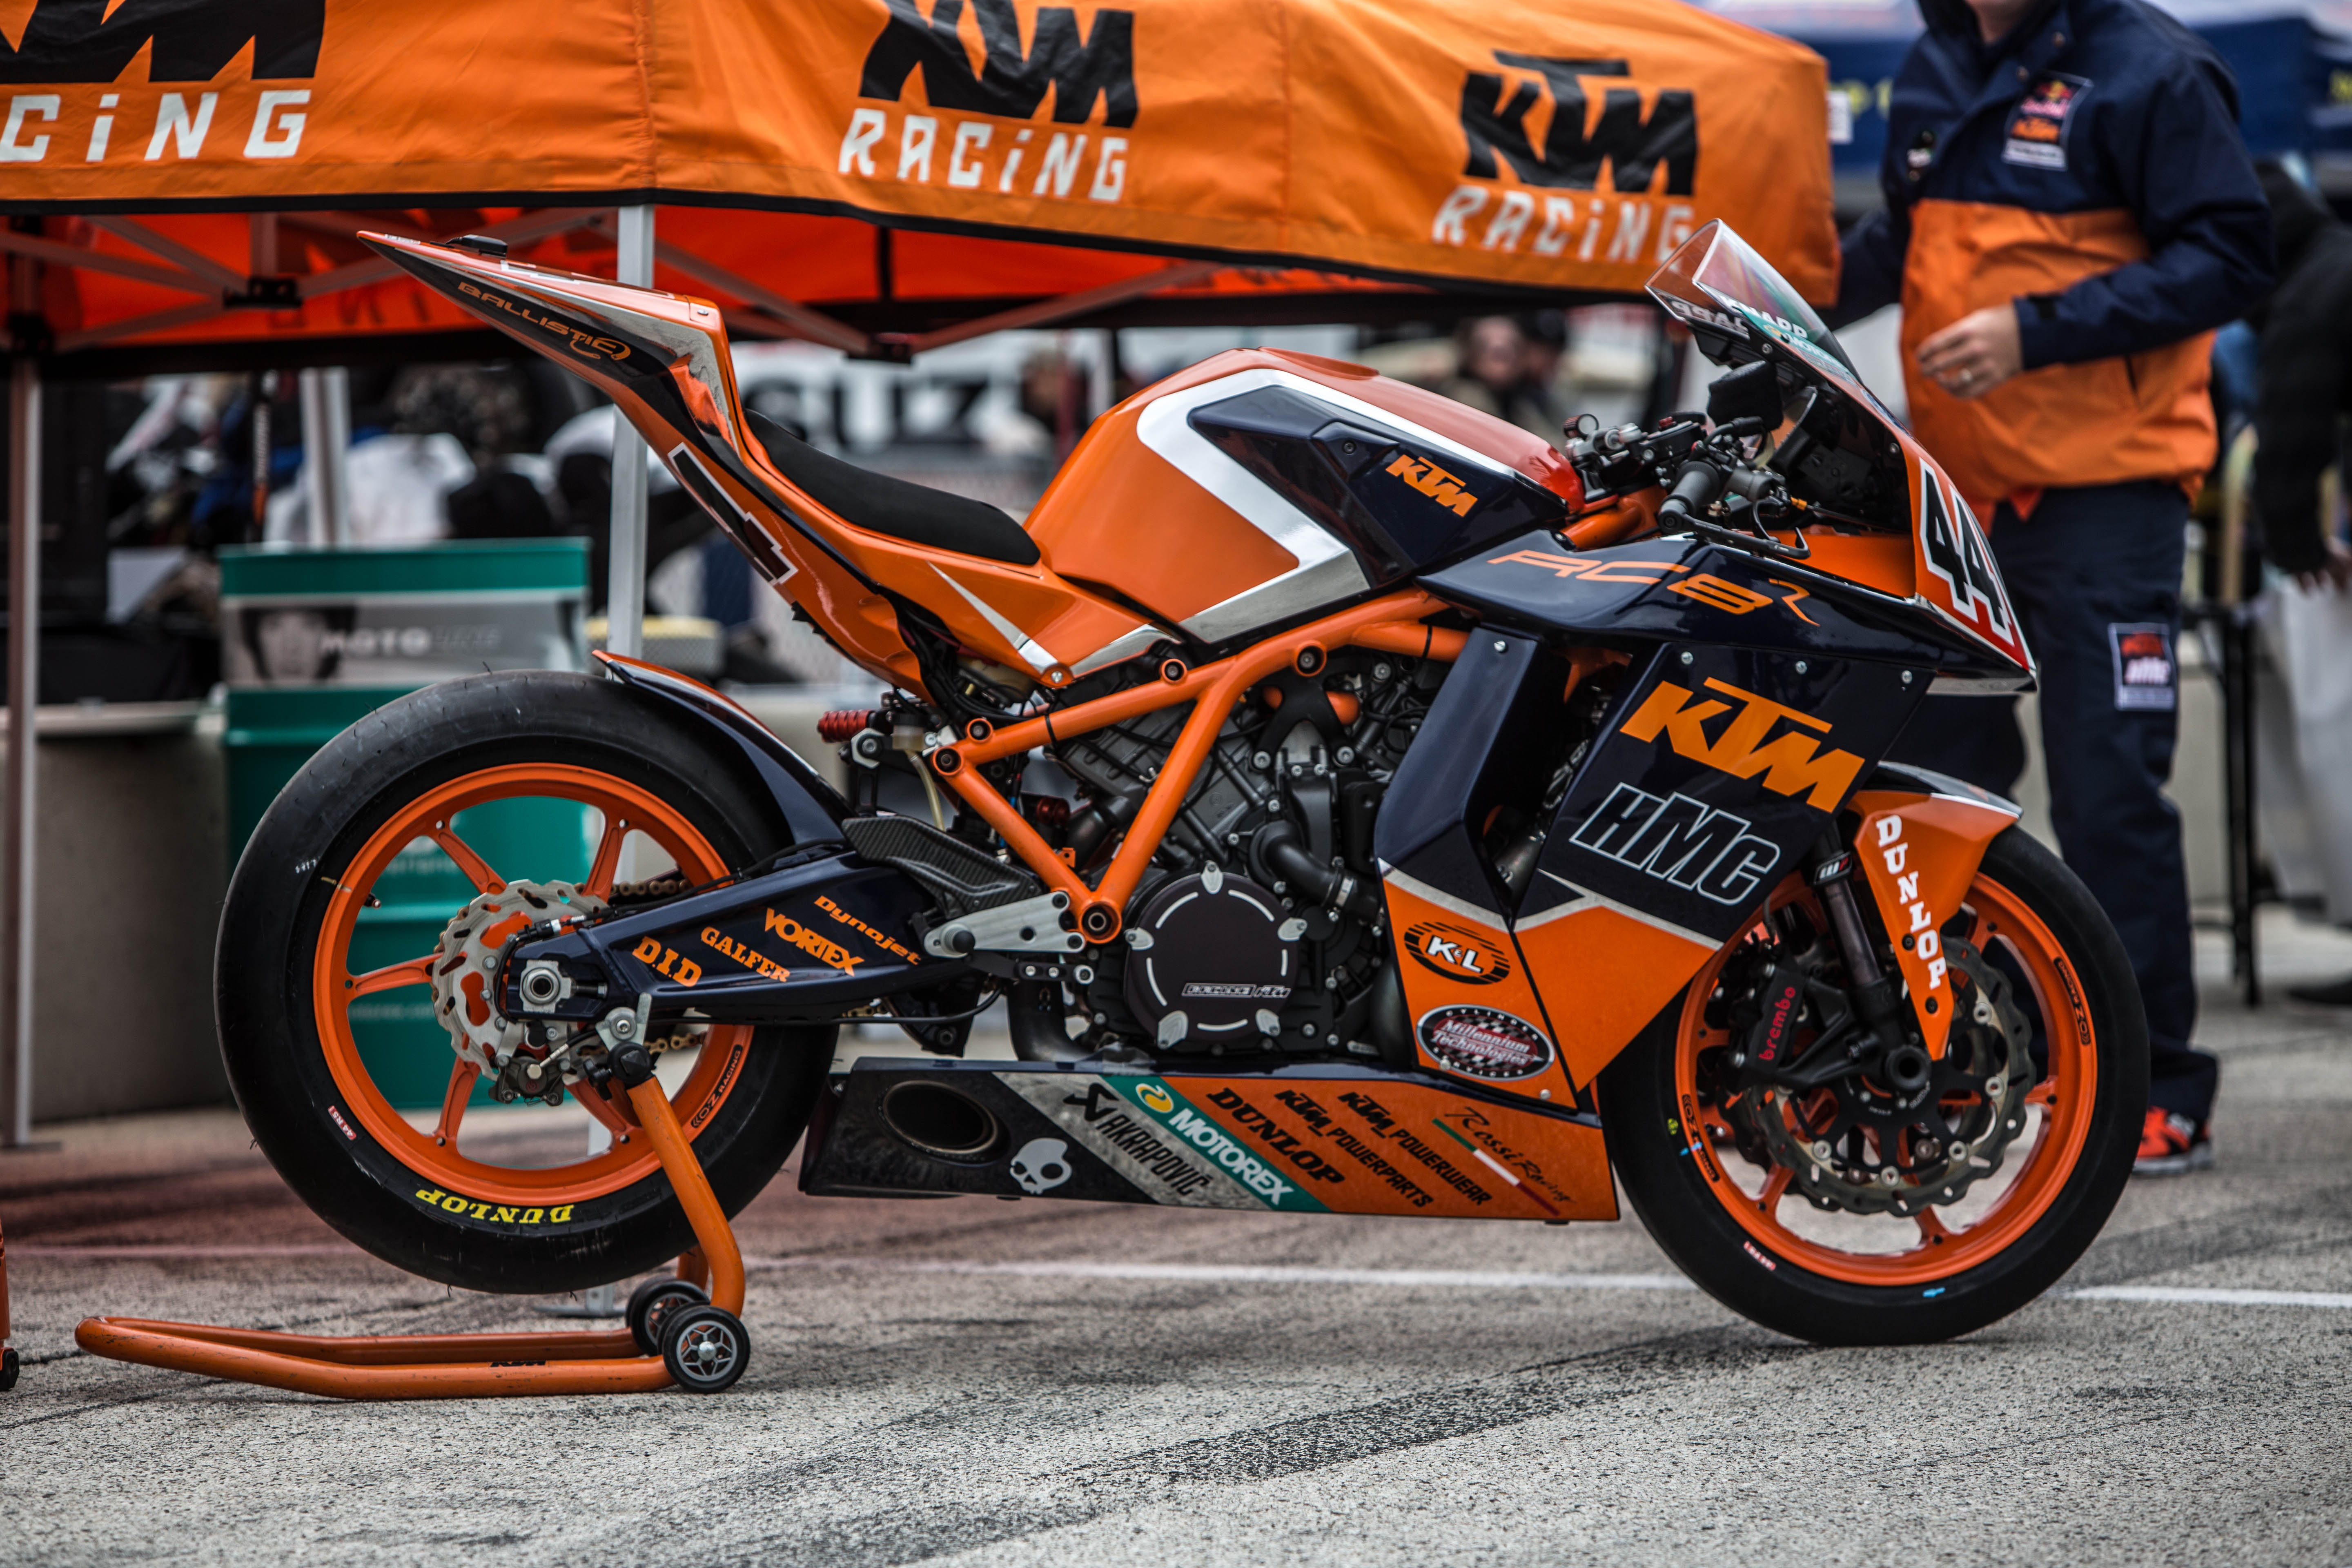 KTM HMC Superbike Team 2013 wallpaper | 5760x3840 ...